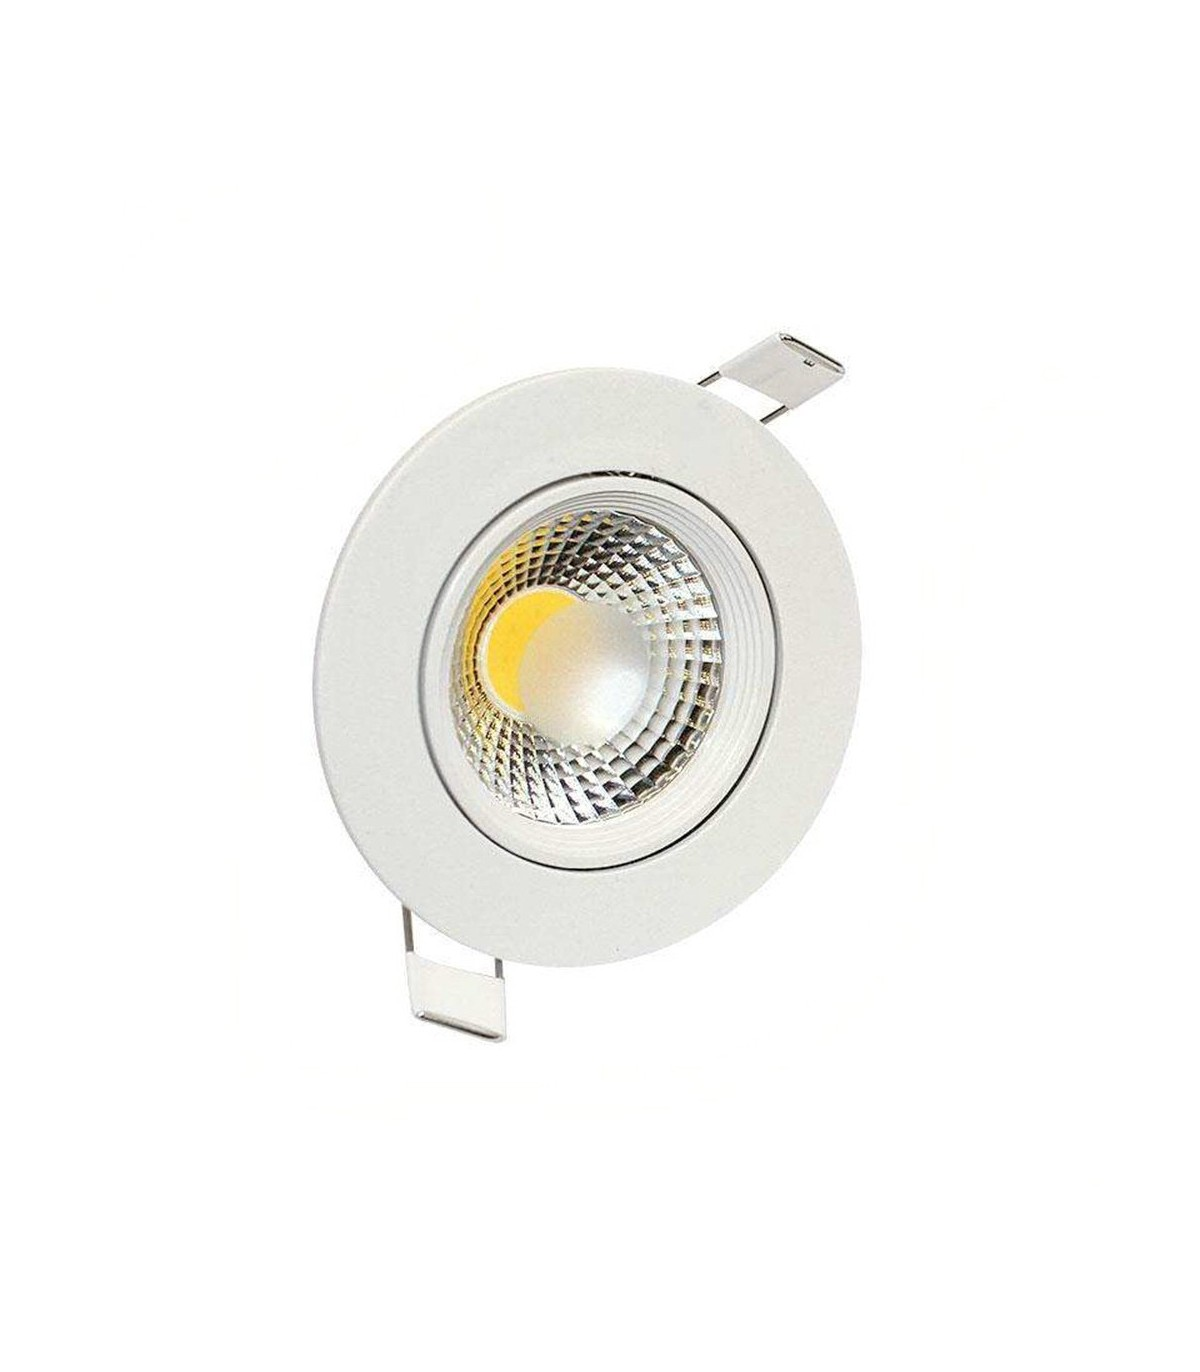 Luces Downlight Led Led Empotrable 7w Downlights Circular Cob